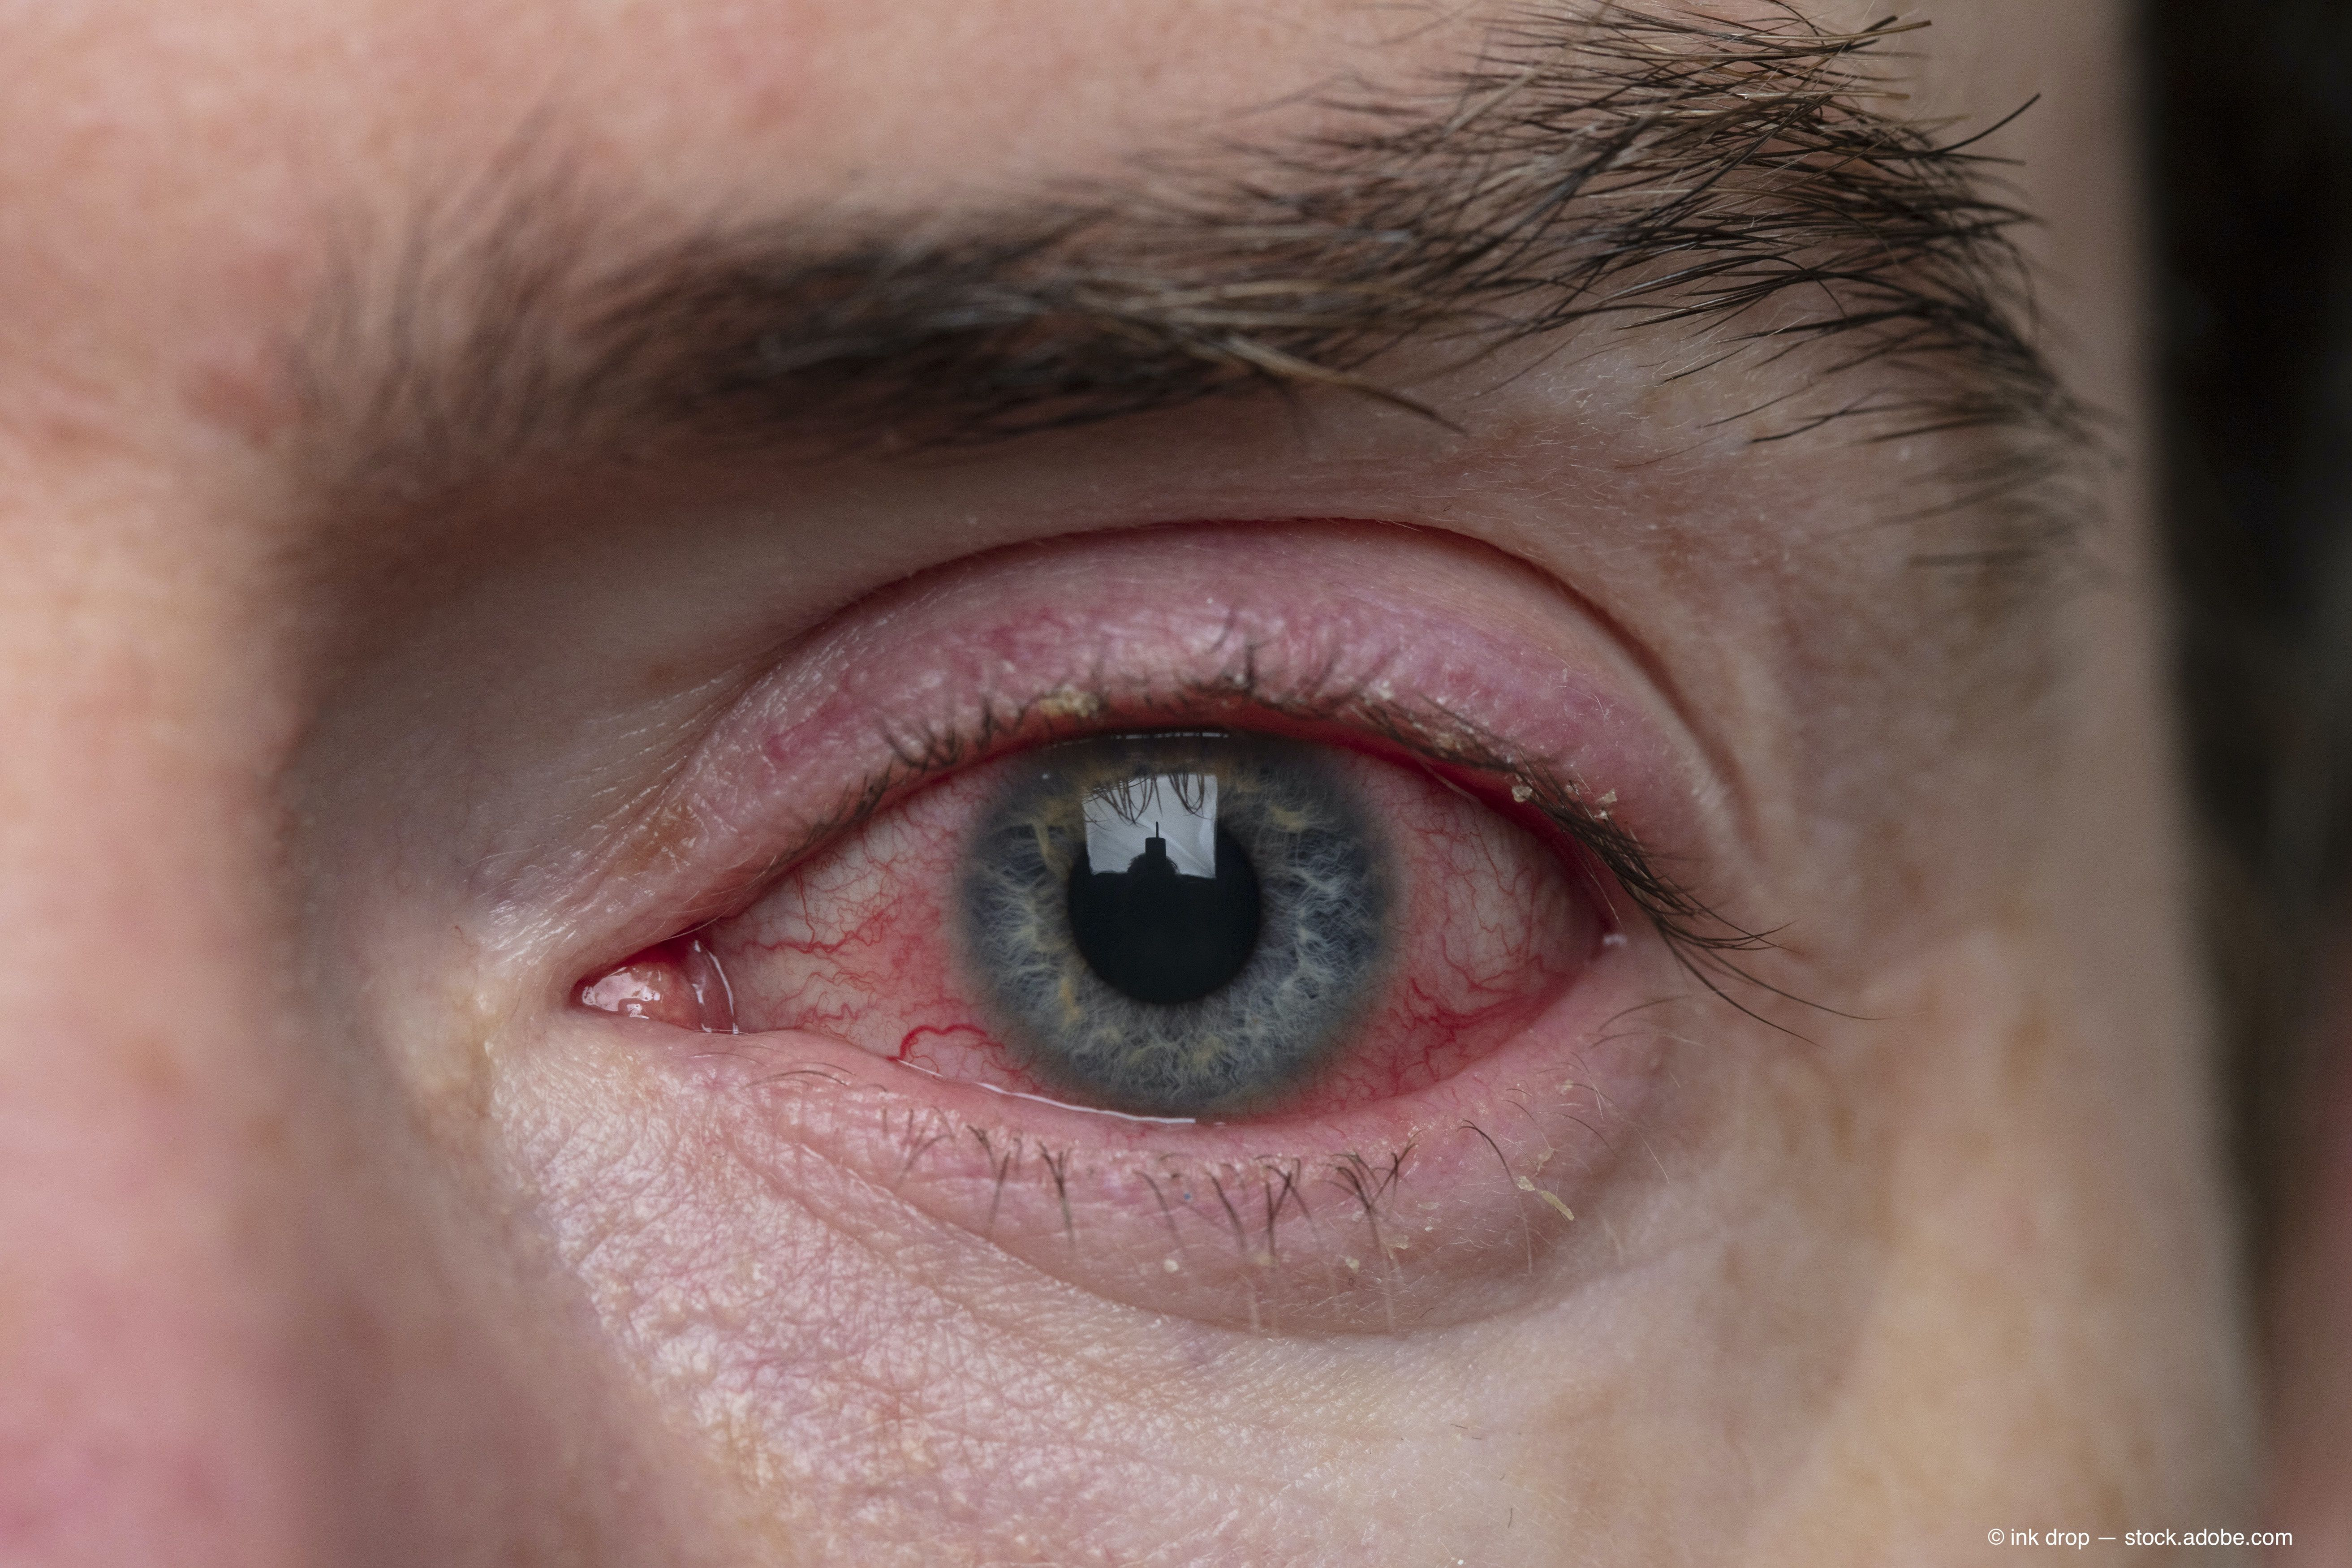 Researchers Identify Pink Eye As Possible Primary Symptom Of Covid 19